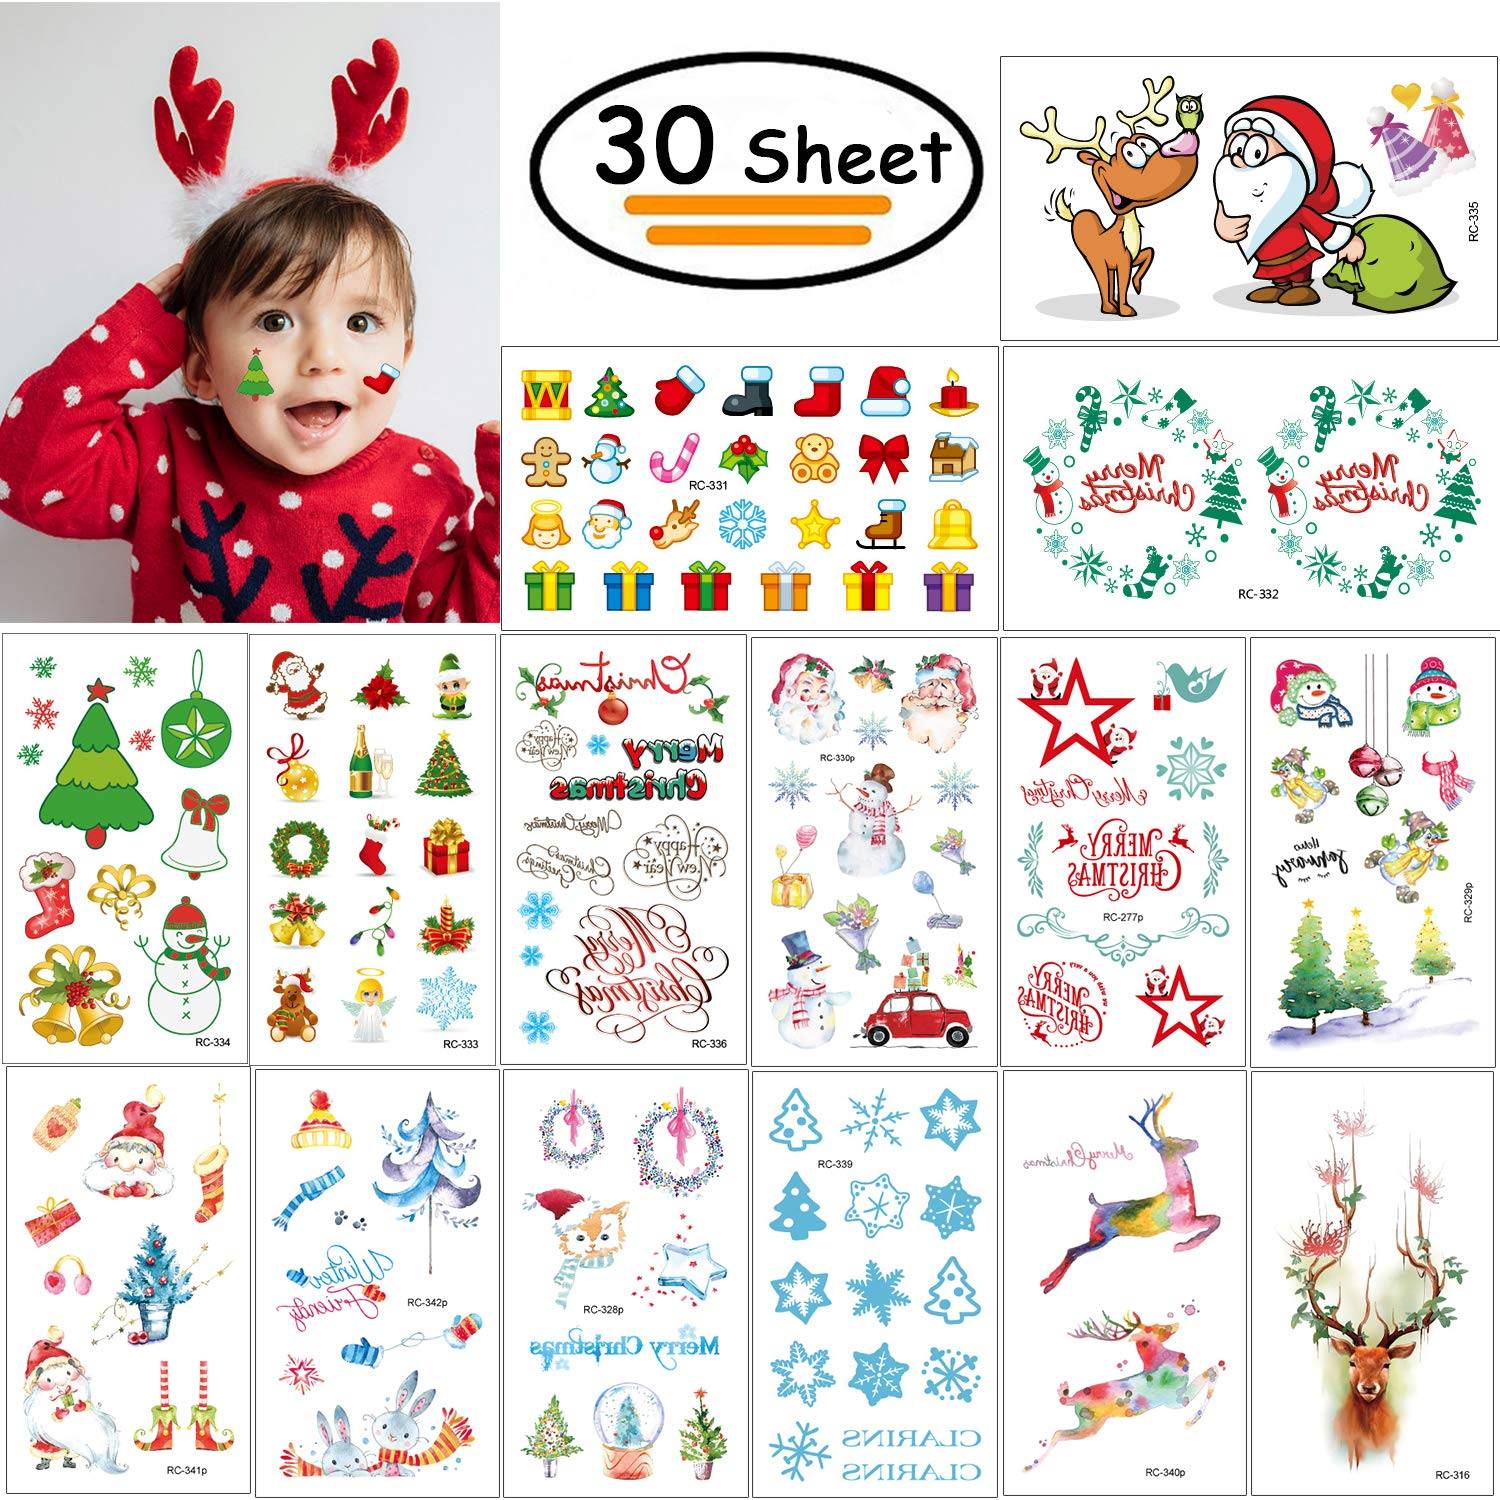 Vibury Christmas Temporary Tattoos for kids, 30 Sheets Christmas Holiday Children's Party Tattoos for Kids Adults Party Bag Filler Stocking Filler 30 Sheets Christmas Holiday Children' s Party Tattoos for Kids Adults Party Bag Filler Stocking Filler